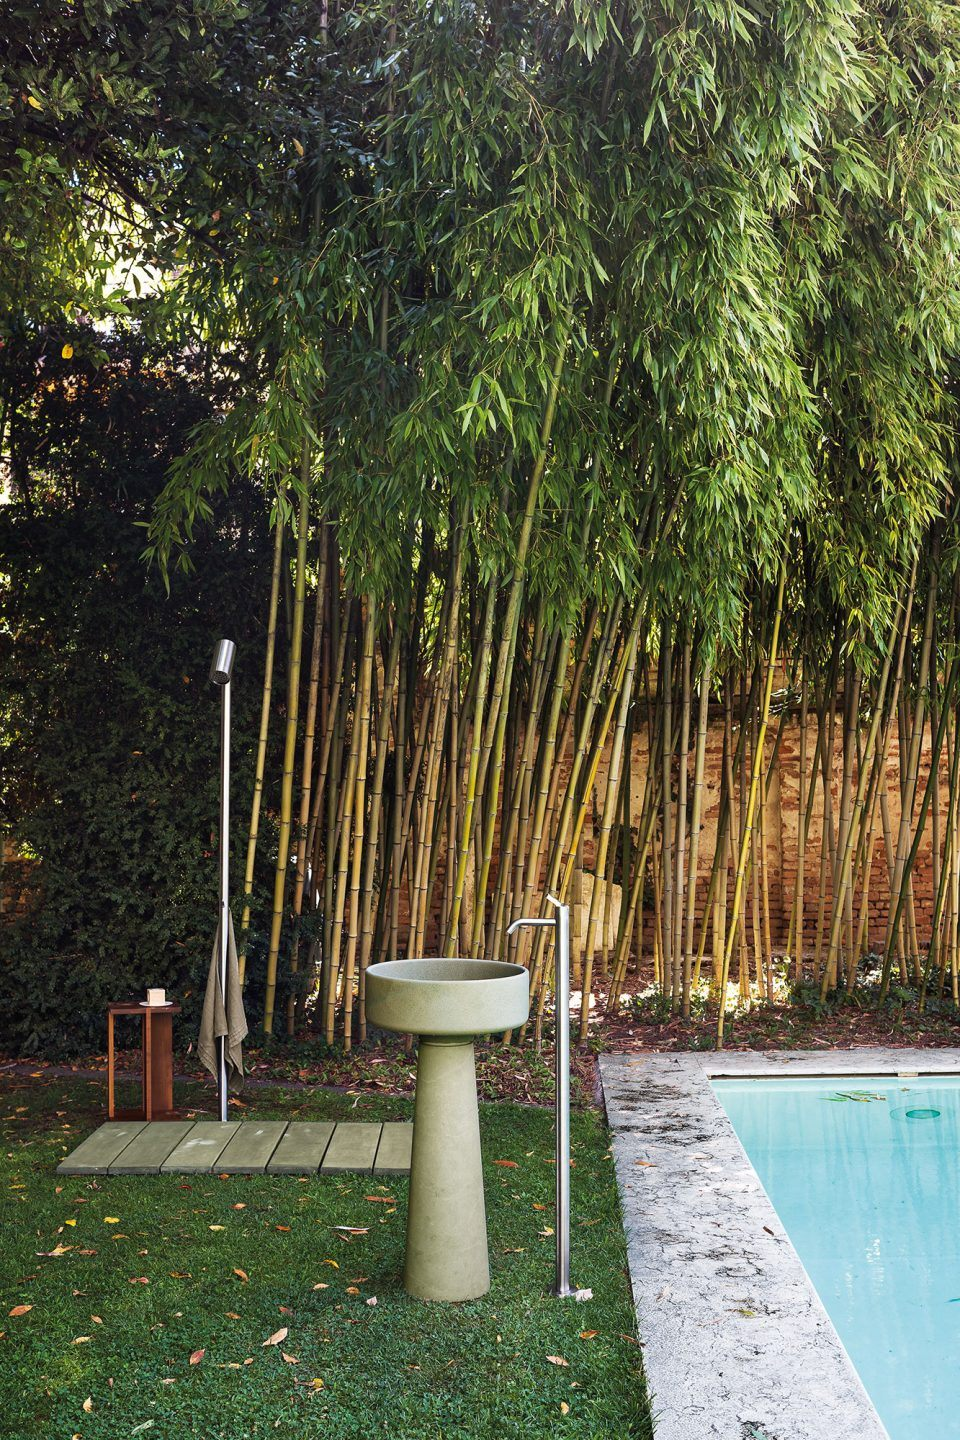 Bjhon 1 Outdoor | <strong>BJHON 1 OUTDOOR</strong> | editore <strong>Agape</strong> | progetto <strong>Angelo Mangiarotti</strong> | ph © <strong>Andrea Ferrari</strong>